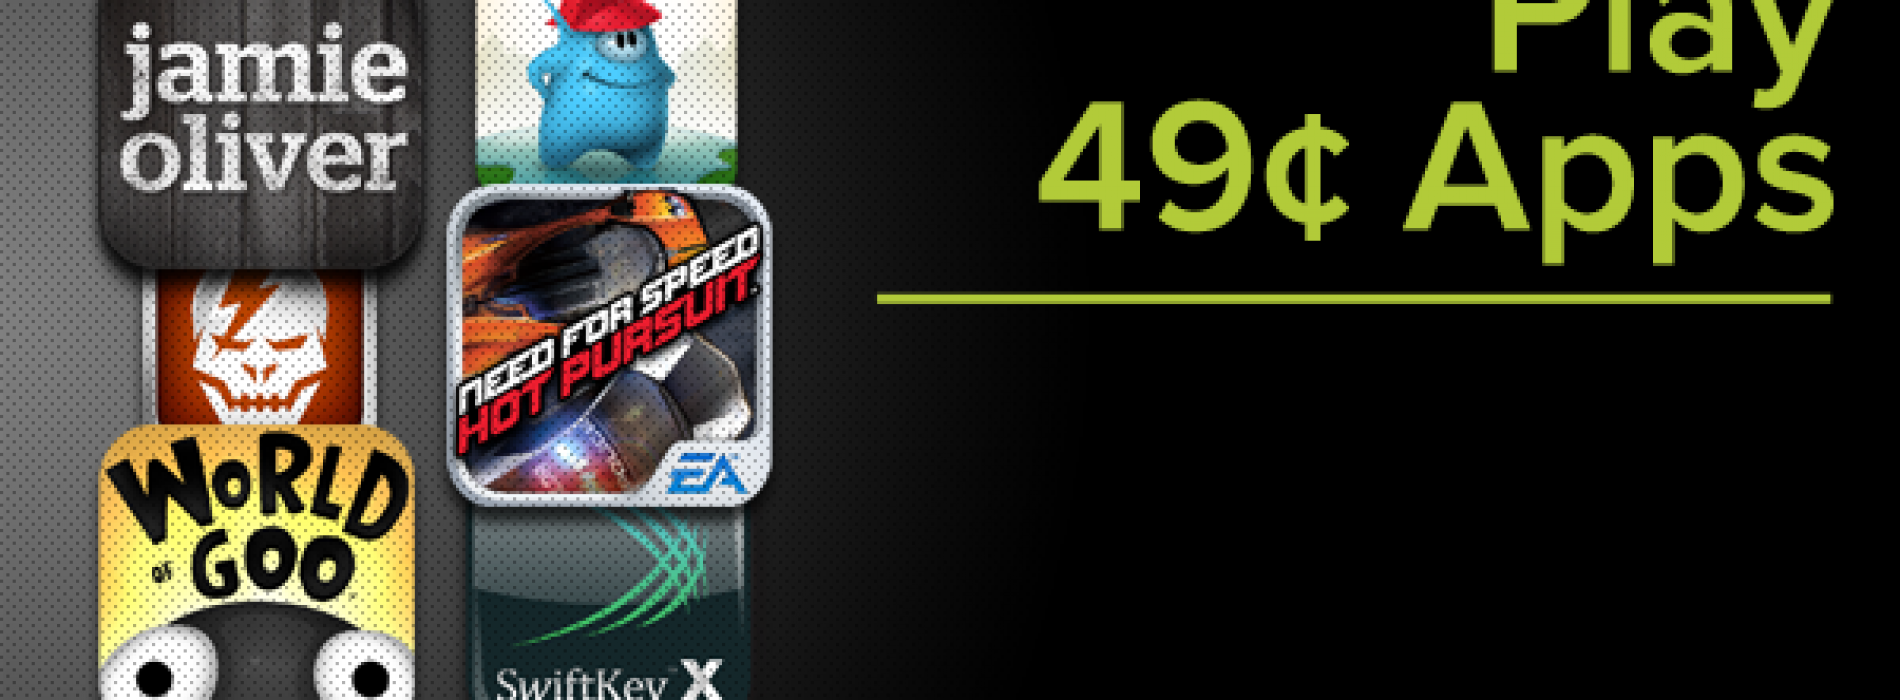 Google puts dozens of apps and games at 49¢ each for Google Play promo